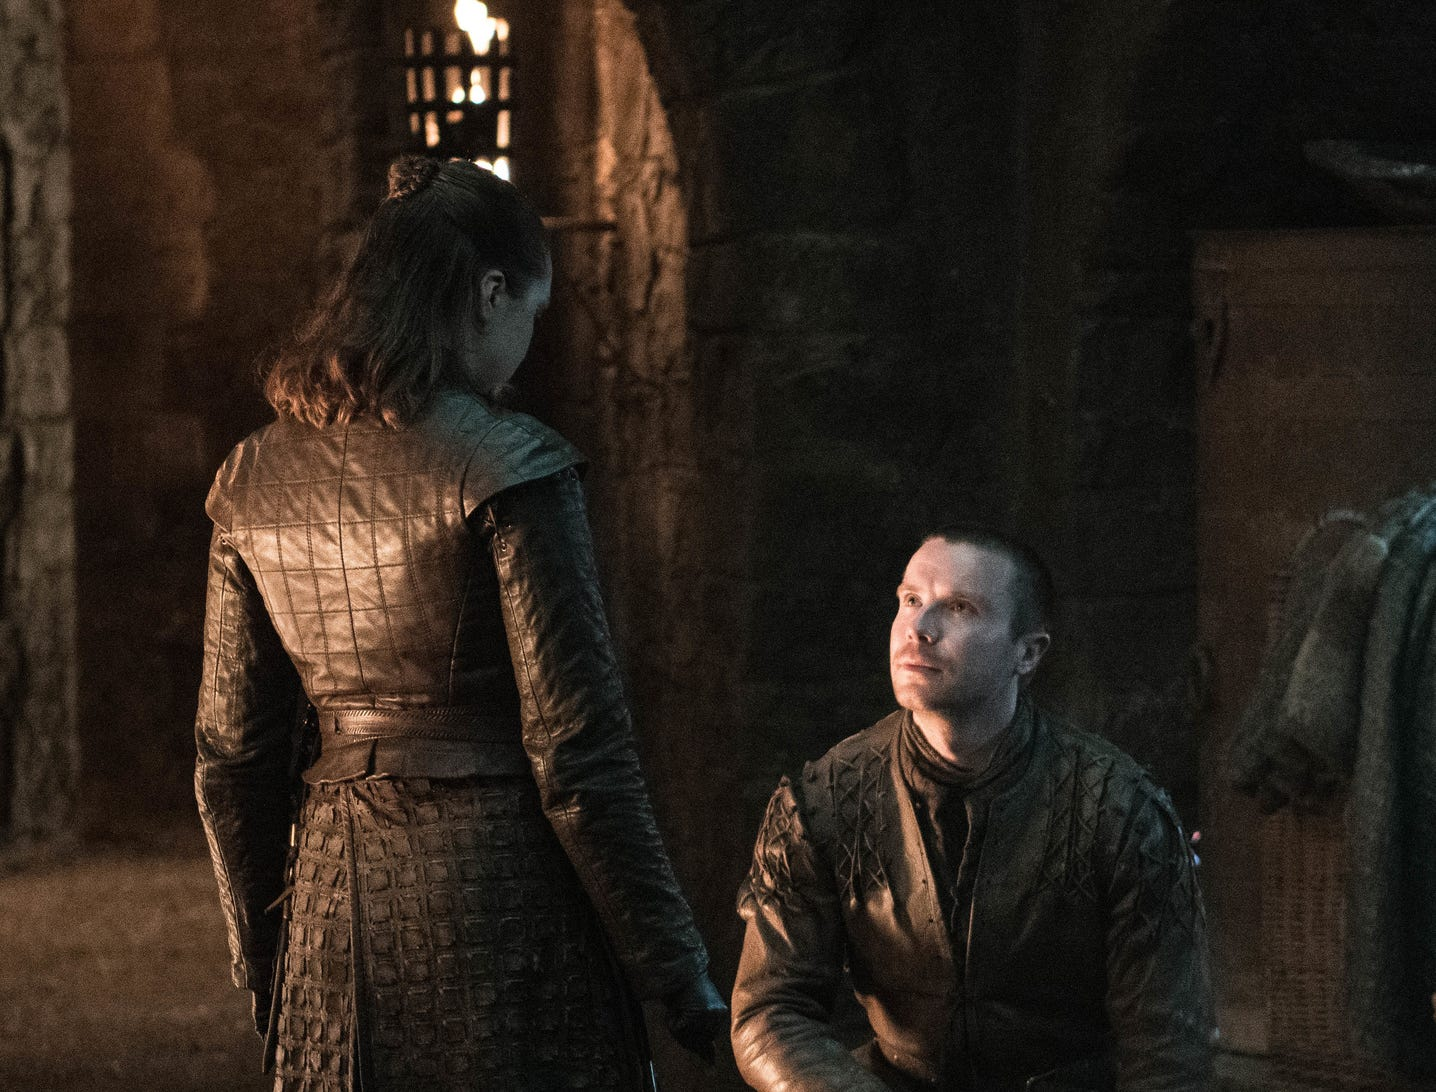 Gendry (Joe Dempsie), right, proposes to Arya Stark (Maisie Williams).